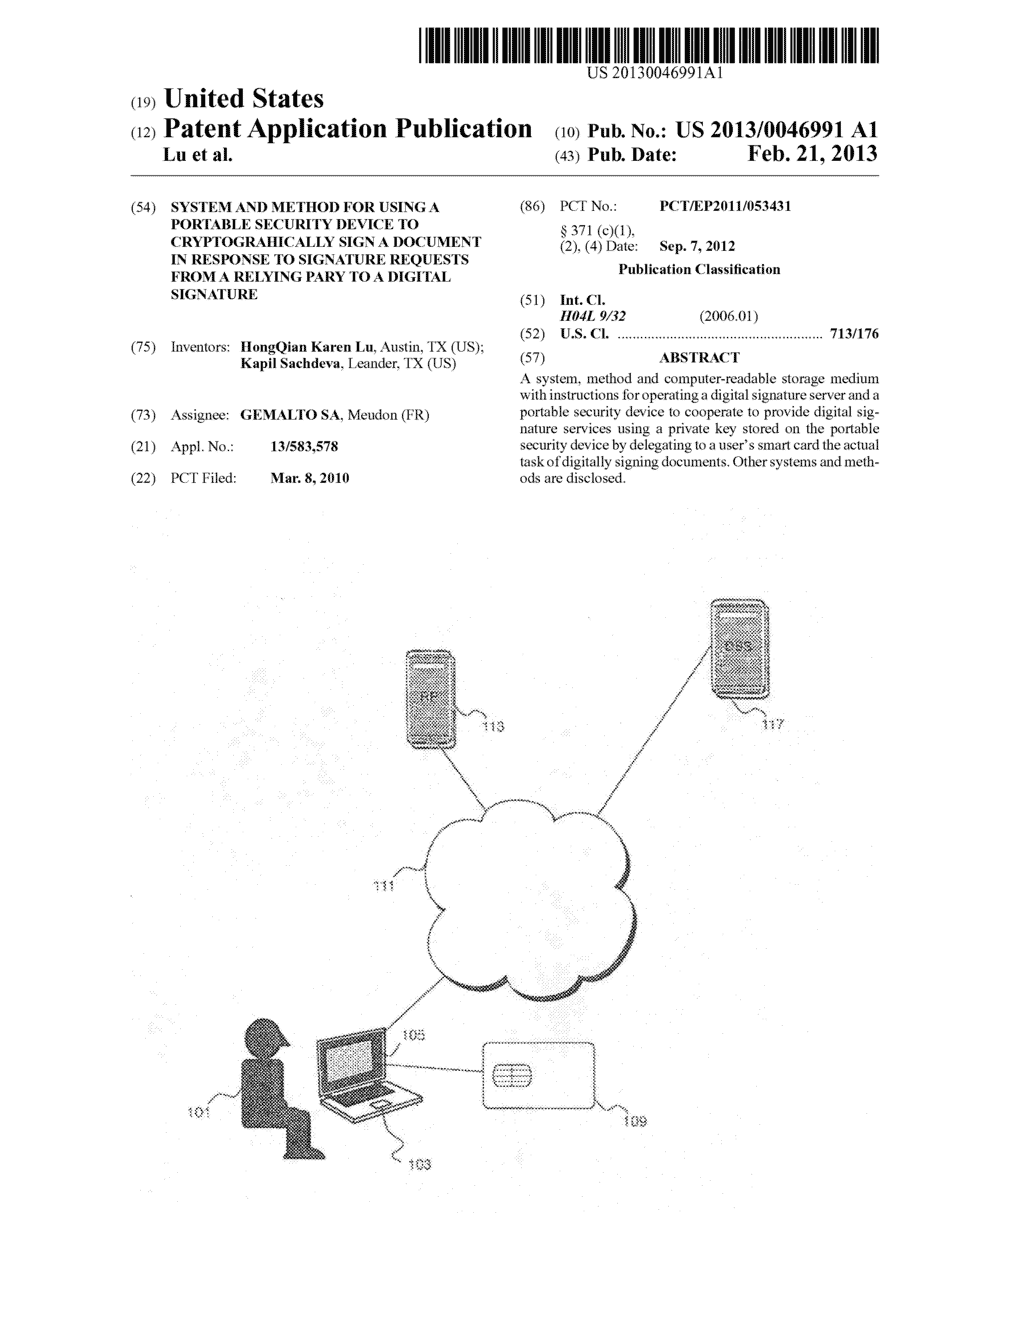 SYSTEM AND METHOD FOR USING A PORTABLE SECURITY DEVICE TO CRYPTOGRAHICALLY     SIGN A DOCUMENT IN RESPONSE TO SIGNATURE REQUESTS FROM A RELYING PARY TO     A DIGITAL SIGNATURE - diagram, schematic, and image 01